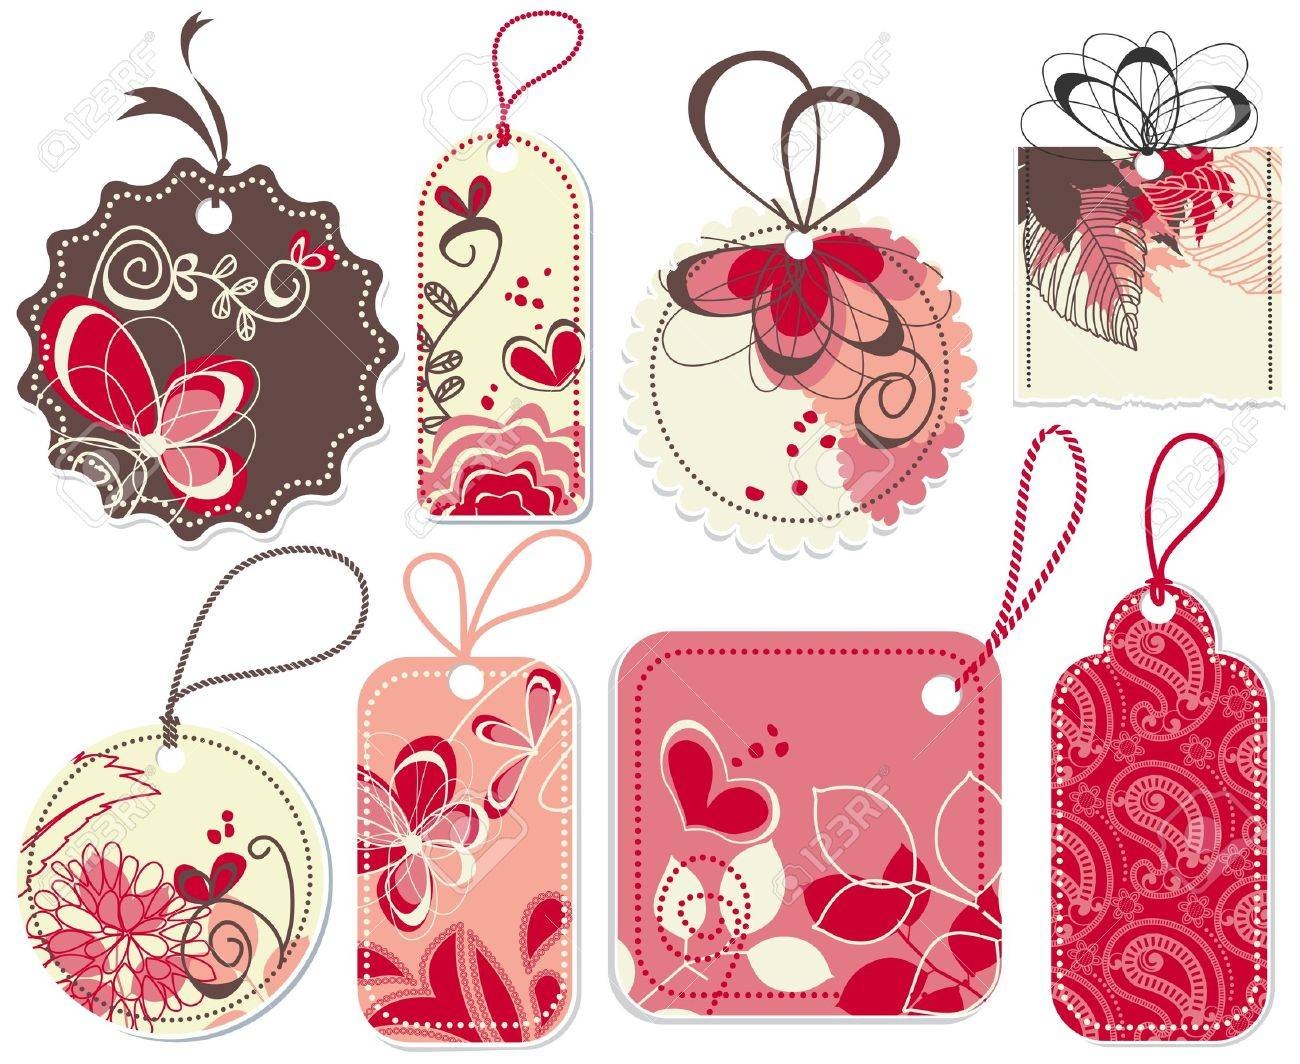 cute price tags collection flowers and hearts ornaments royalty